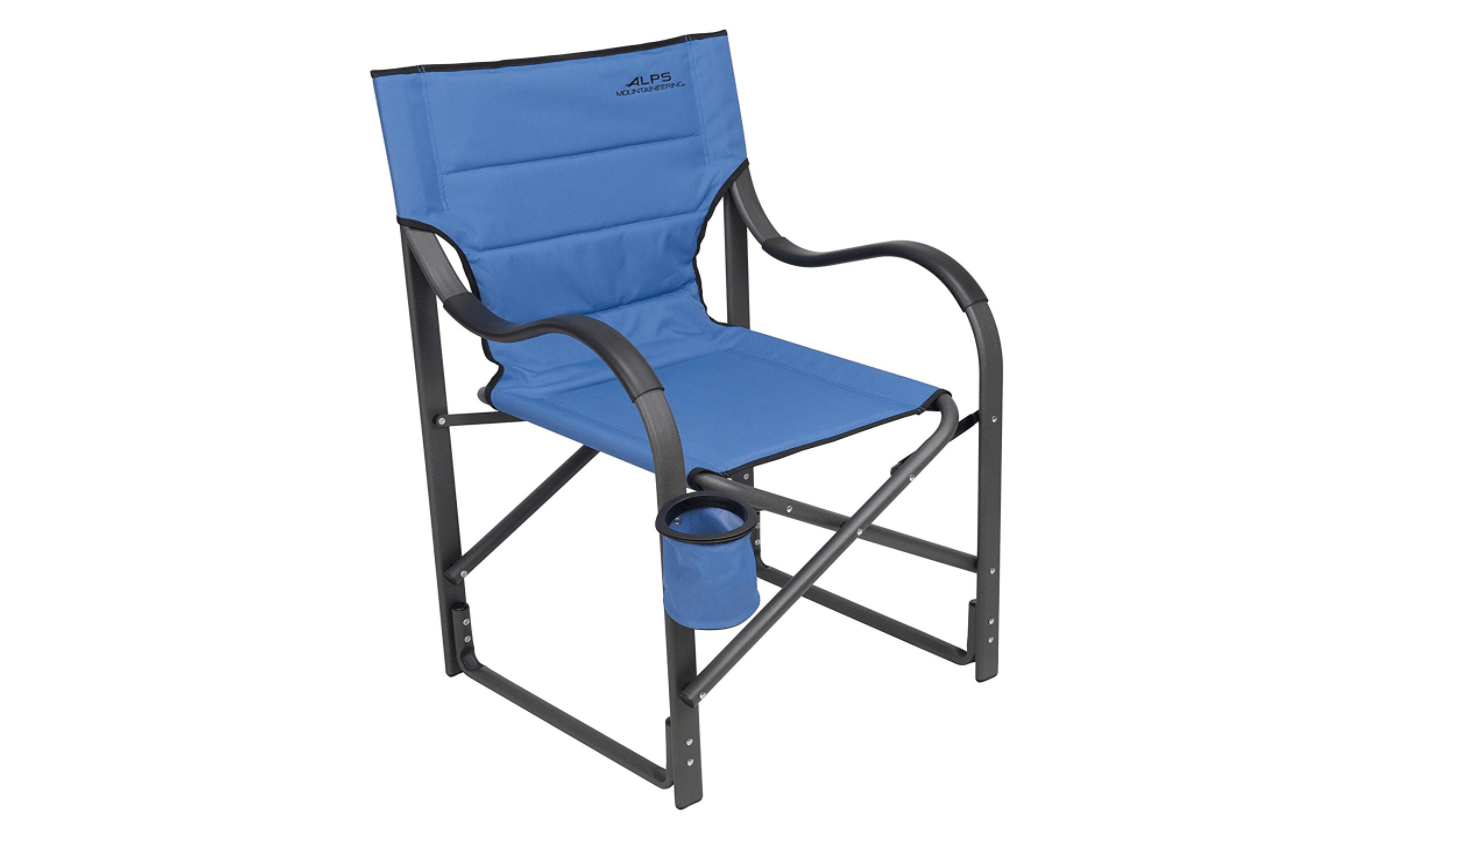 Best Camp Chair The 7 Best Camp Chairs The Best Camping Chairs For